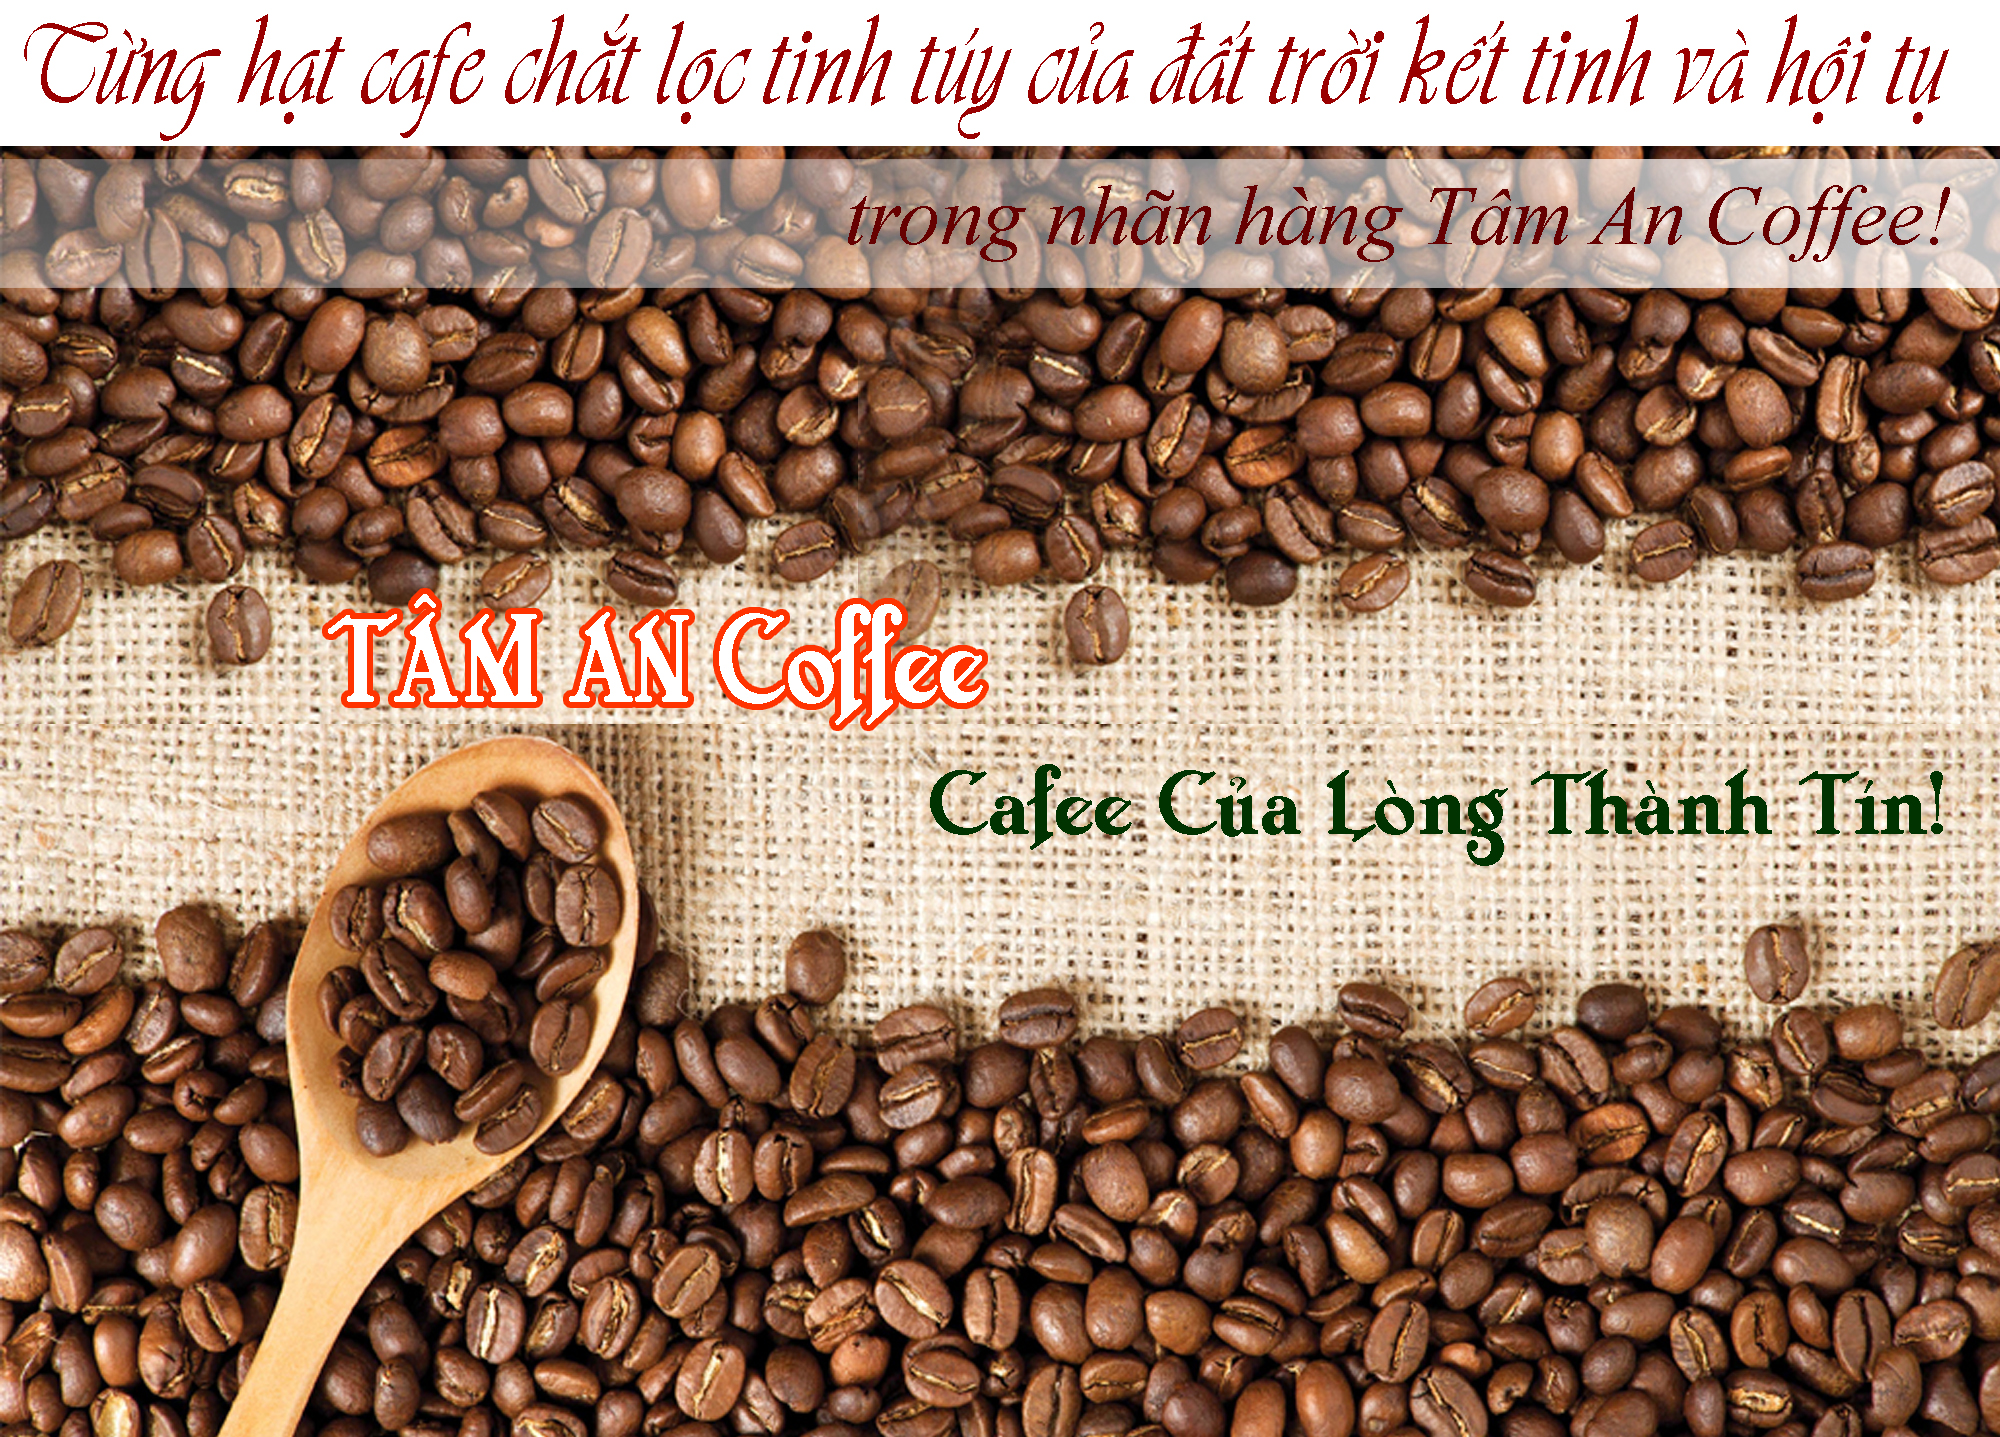 cafe-sach-nguyen-chat